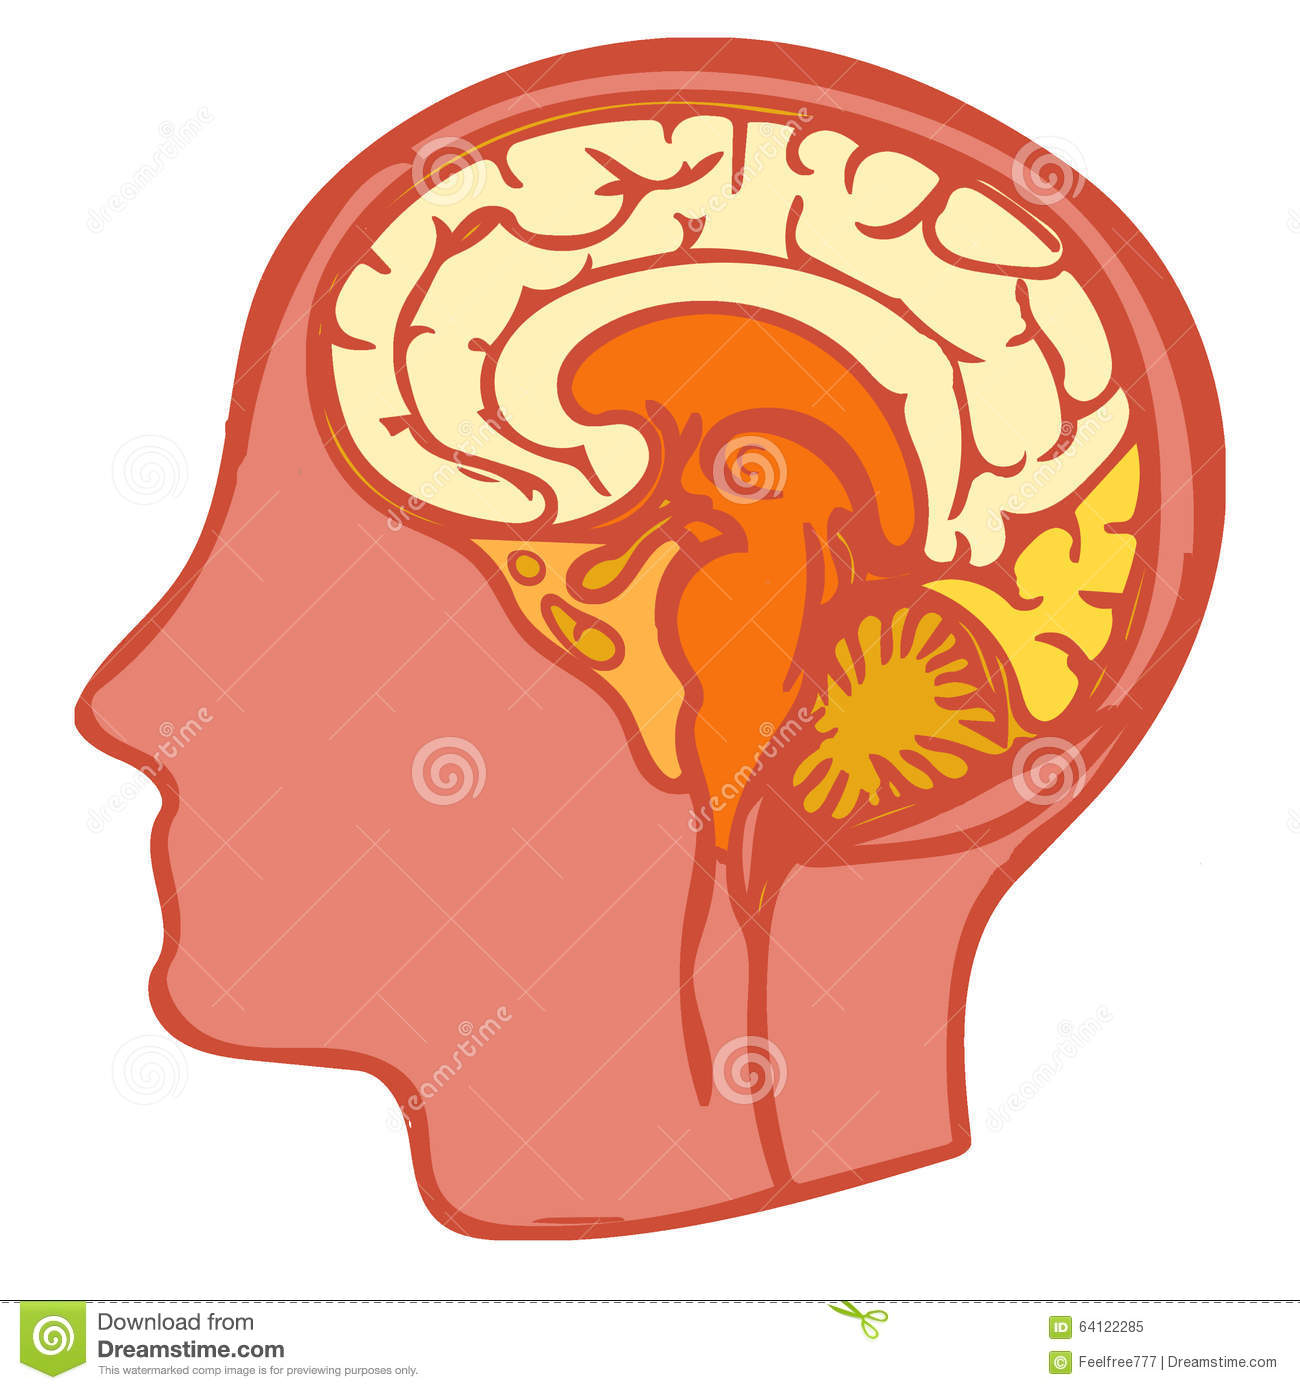 Human Brain Anatomy Stock Illustration Illustration Of Head 64122285